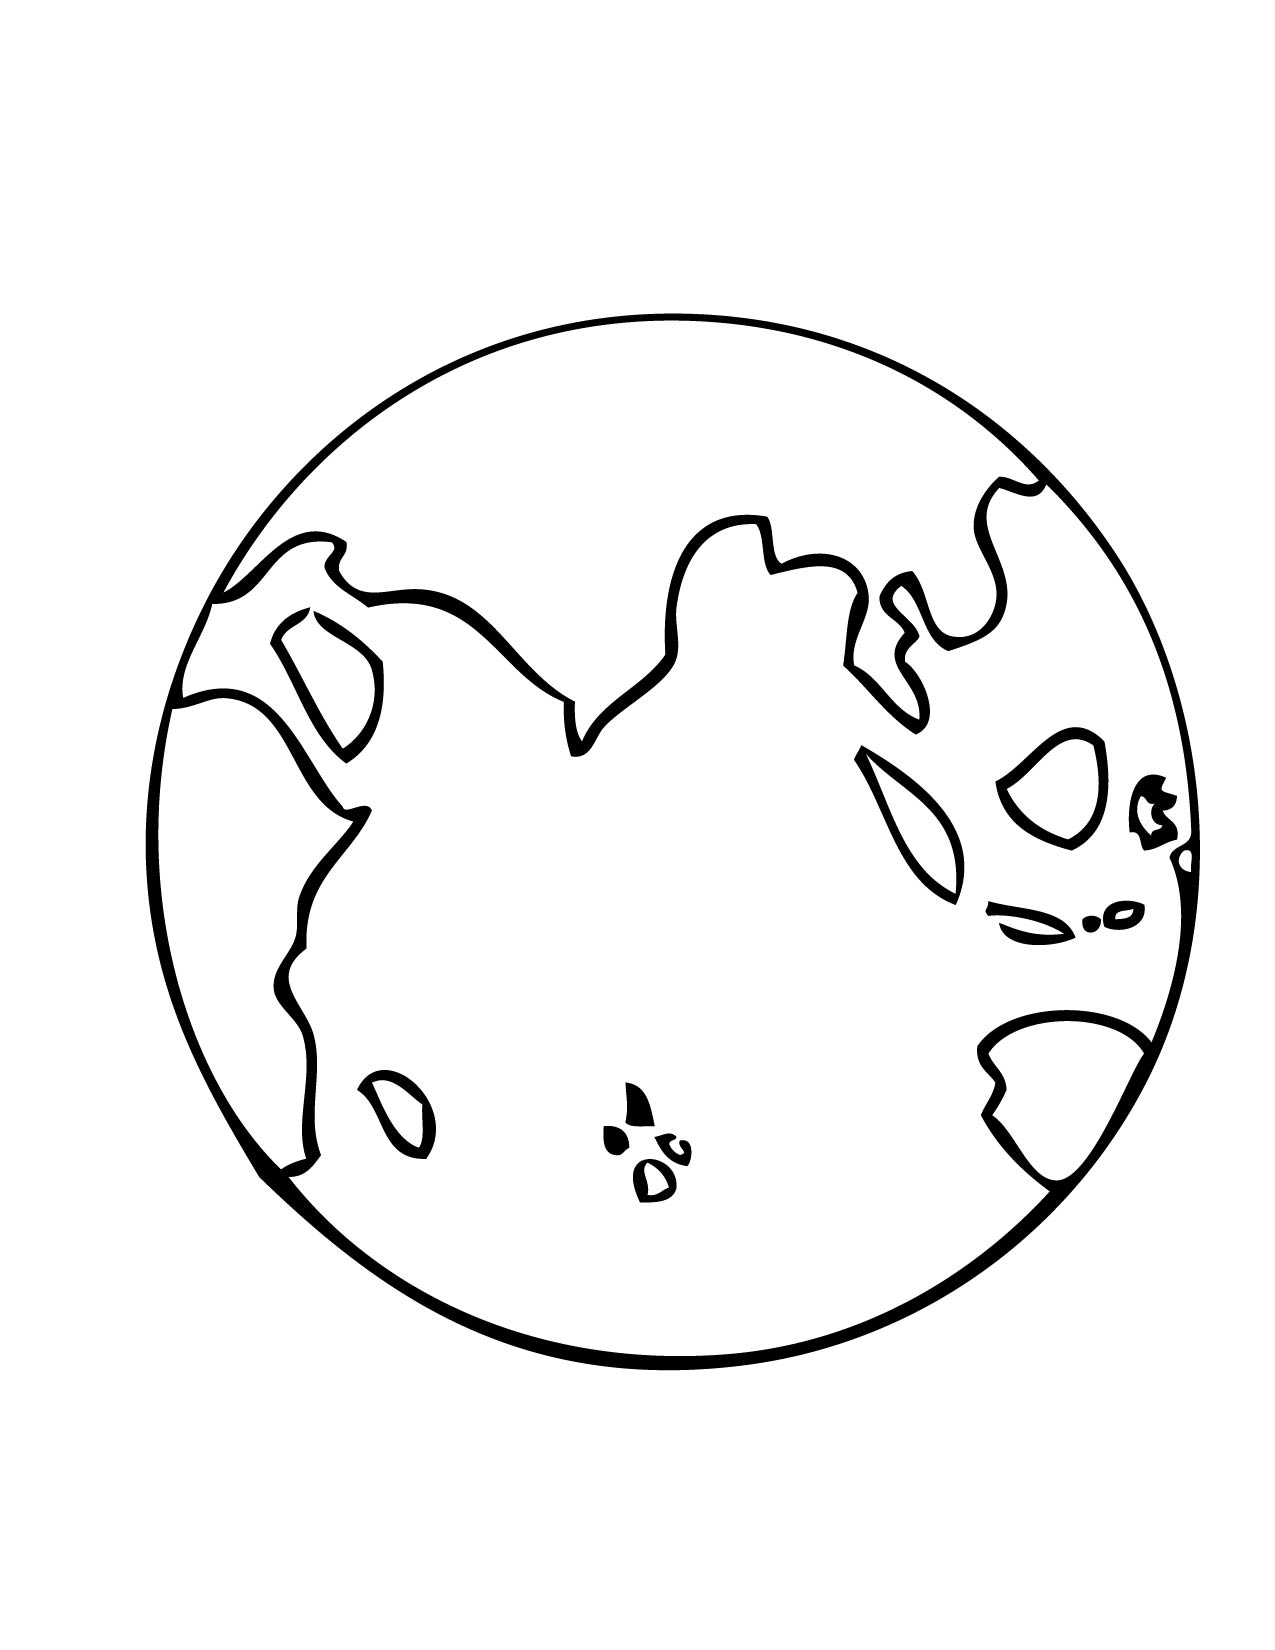 Earth Printable | Free download best Earth Printable on ClipArtMag.com